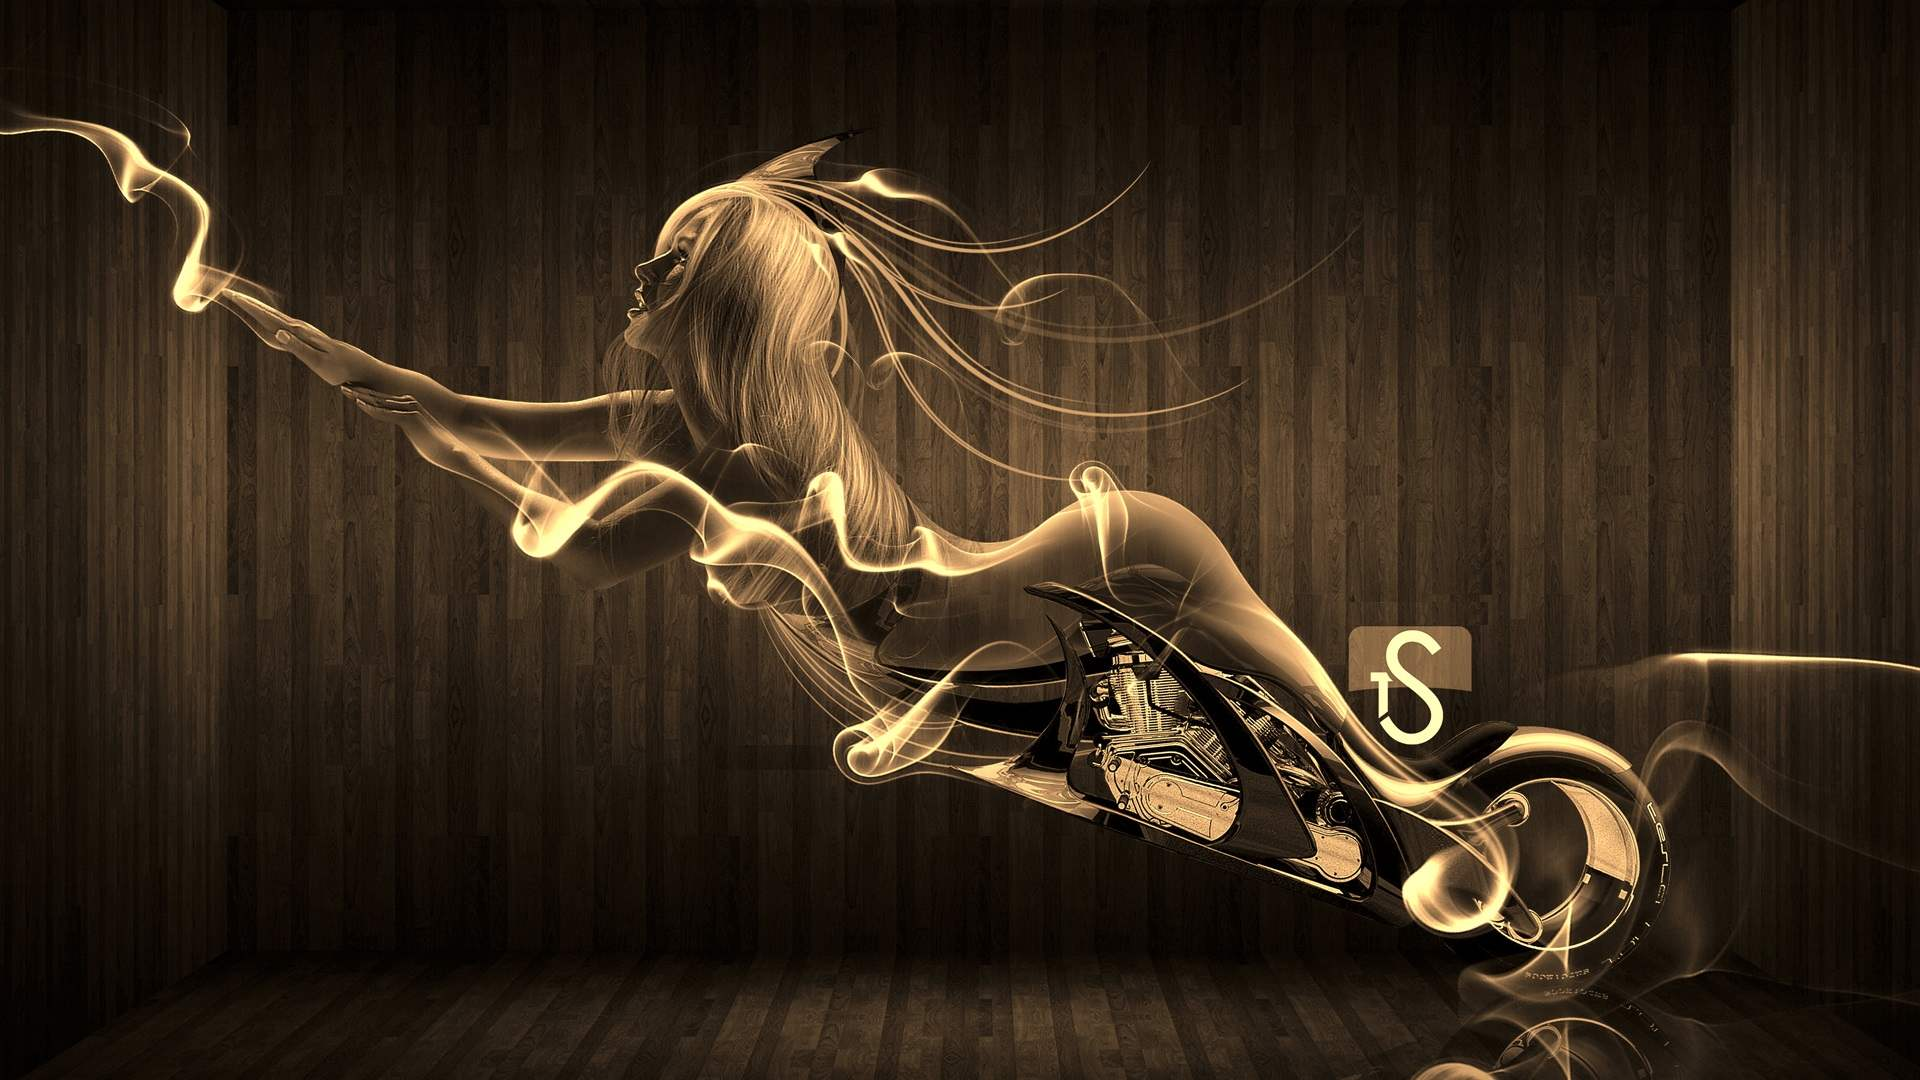 30 Stunning and Unique Wallpapers Designs   Unique 1920x1080